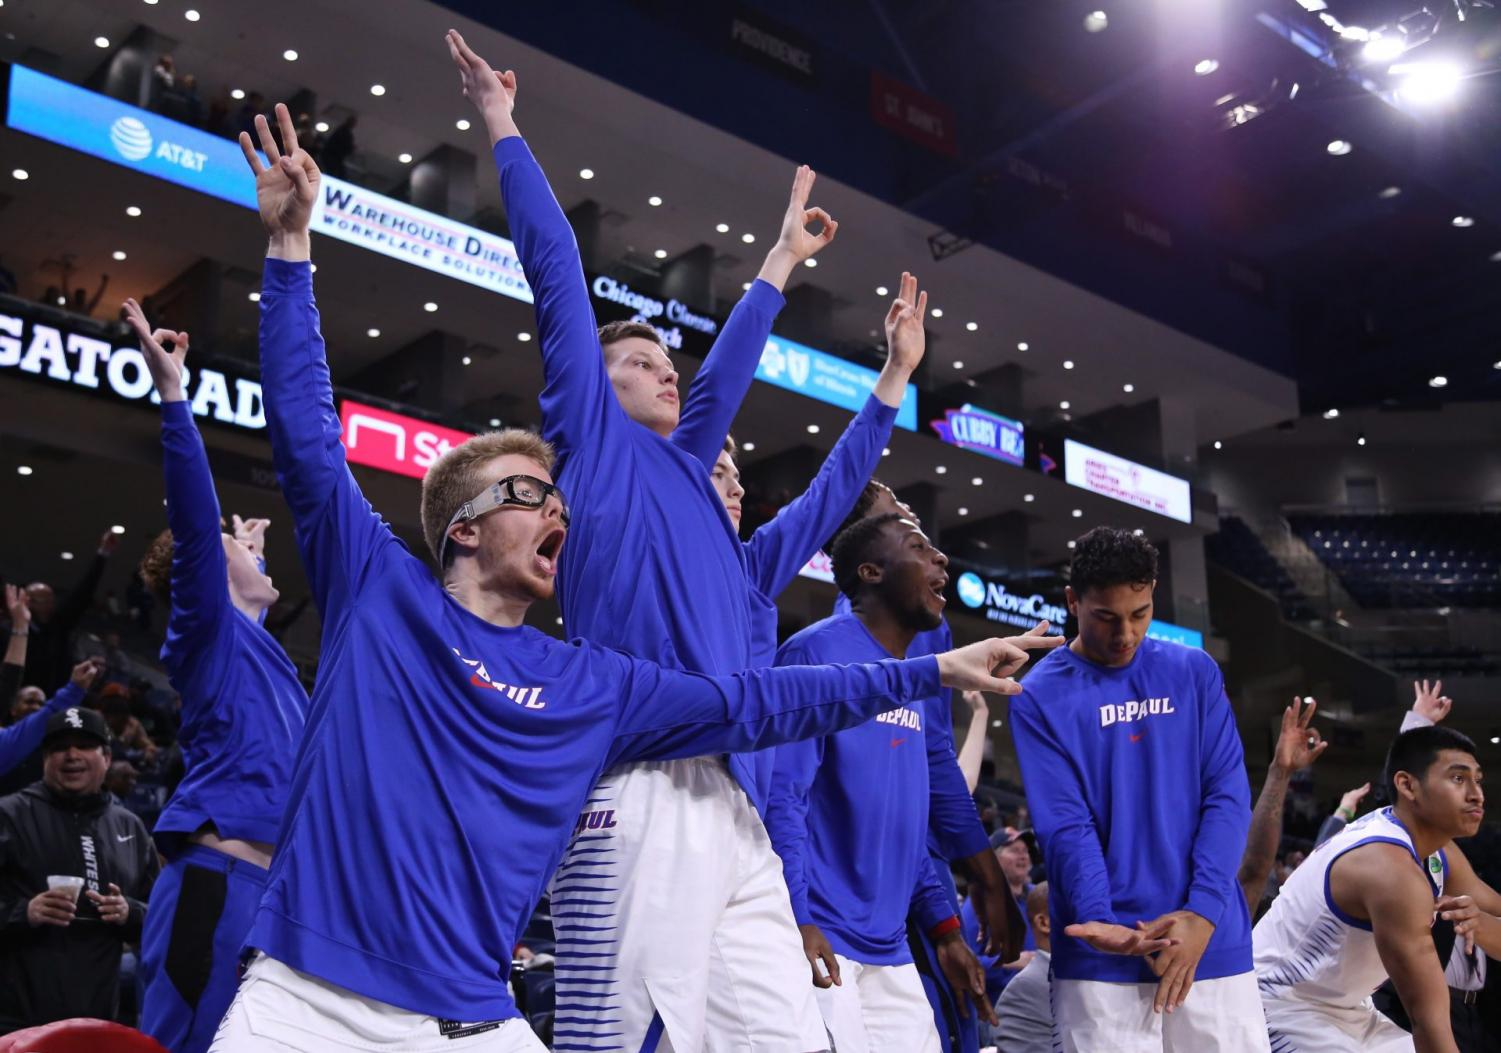 The DePaul bench celebrates during the second half against Central Michigan on Tuesday at Wintrust Arena. The Blue Demons won the game 88-75.